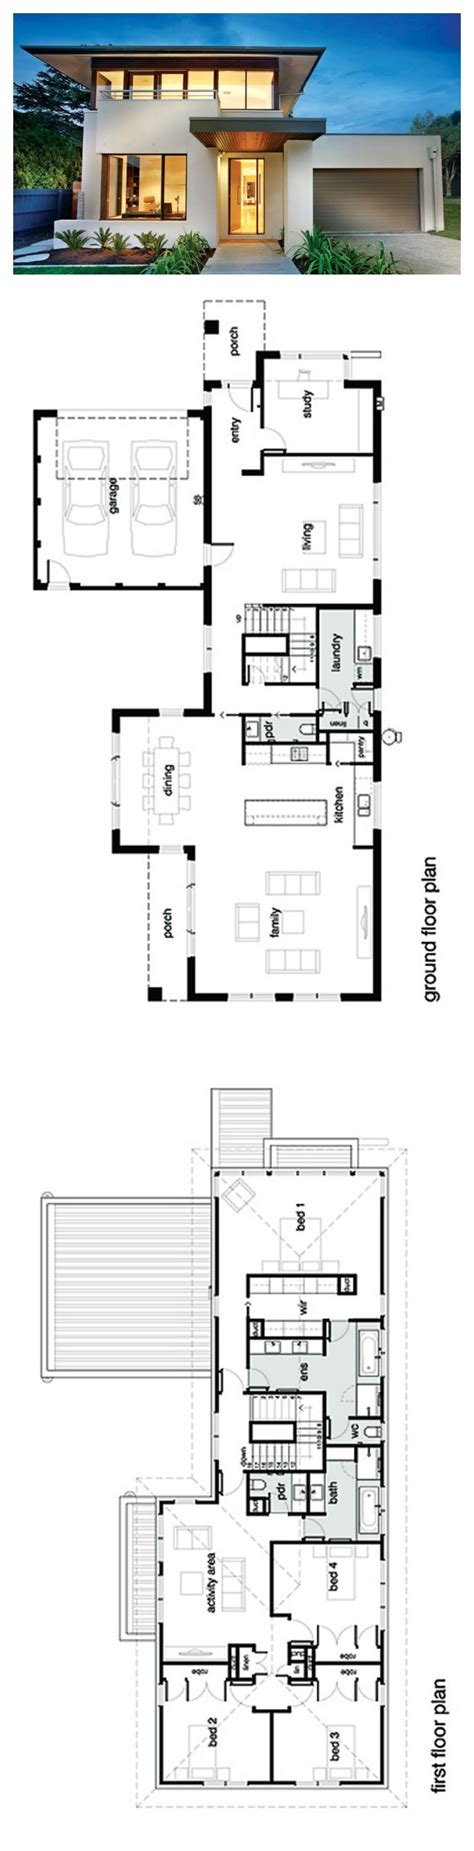 Zweifamilienhaus Grundriss Modern by Best 25 Modern House Plans Ideas On